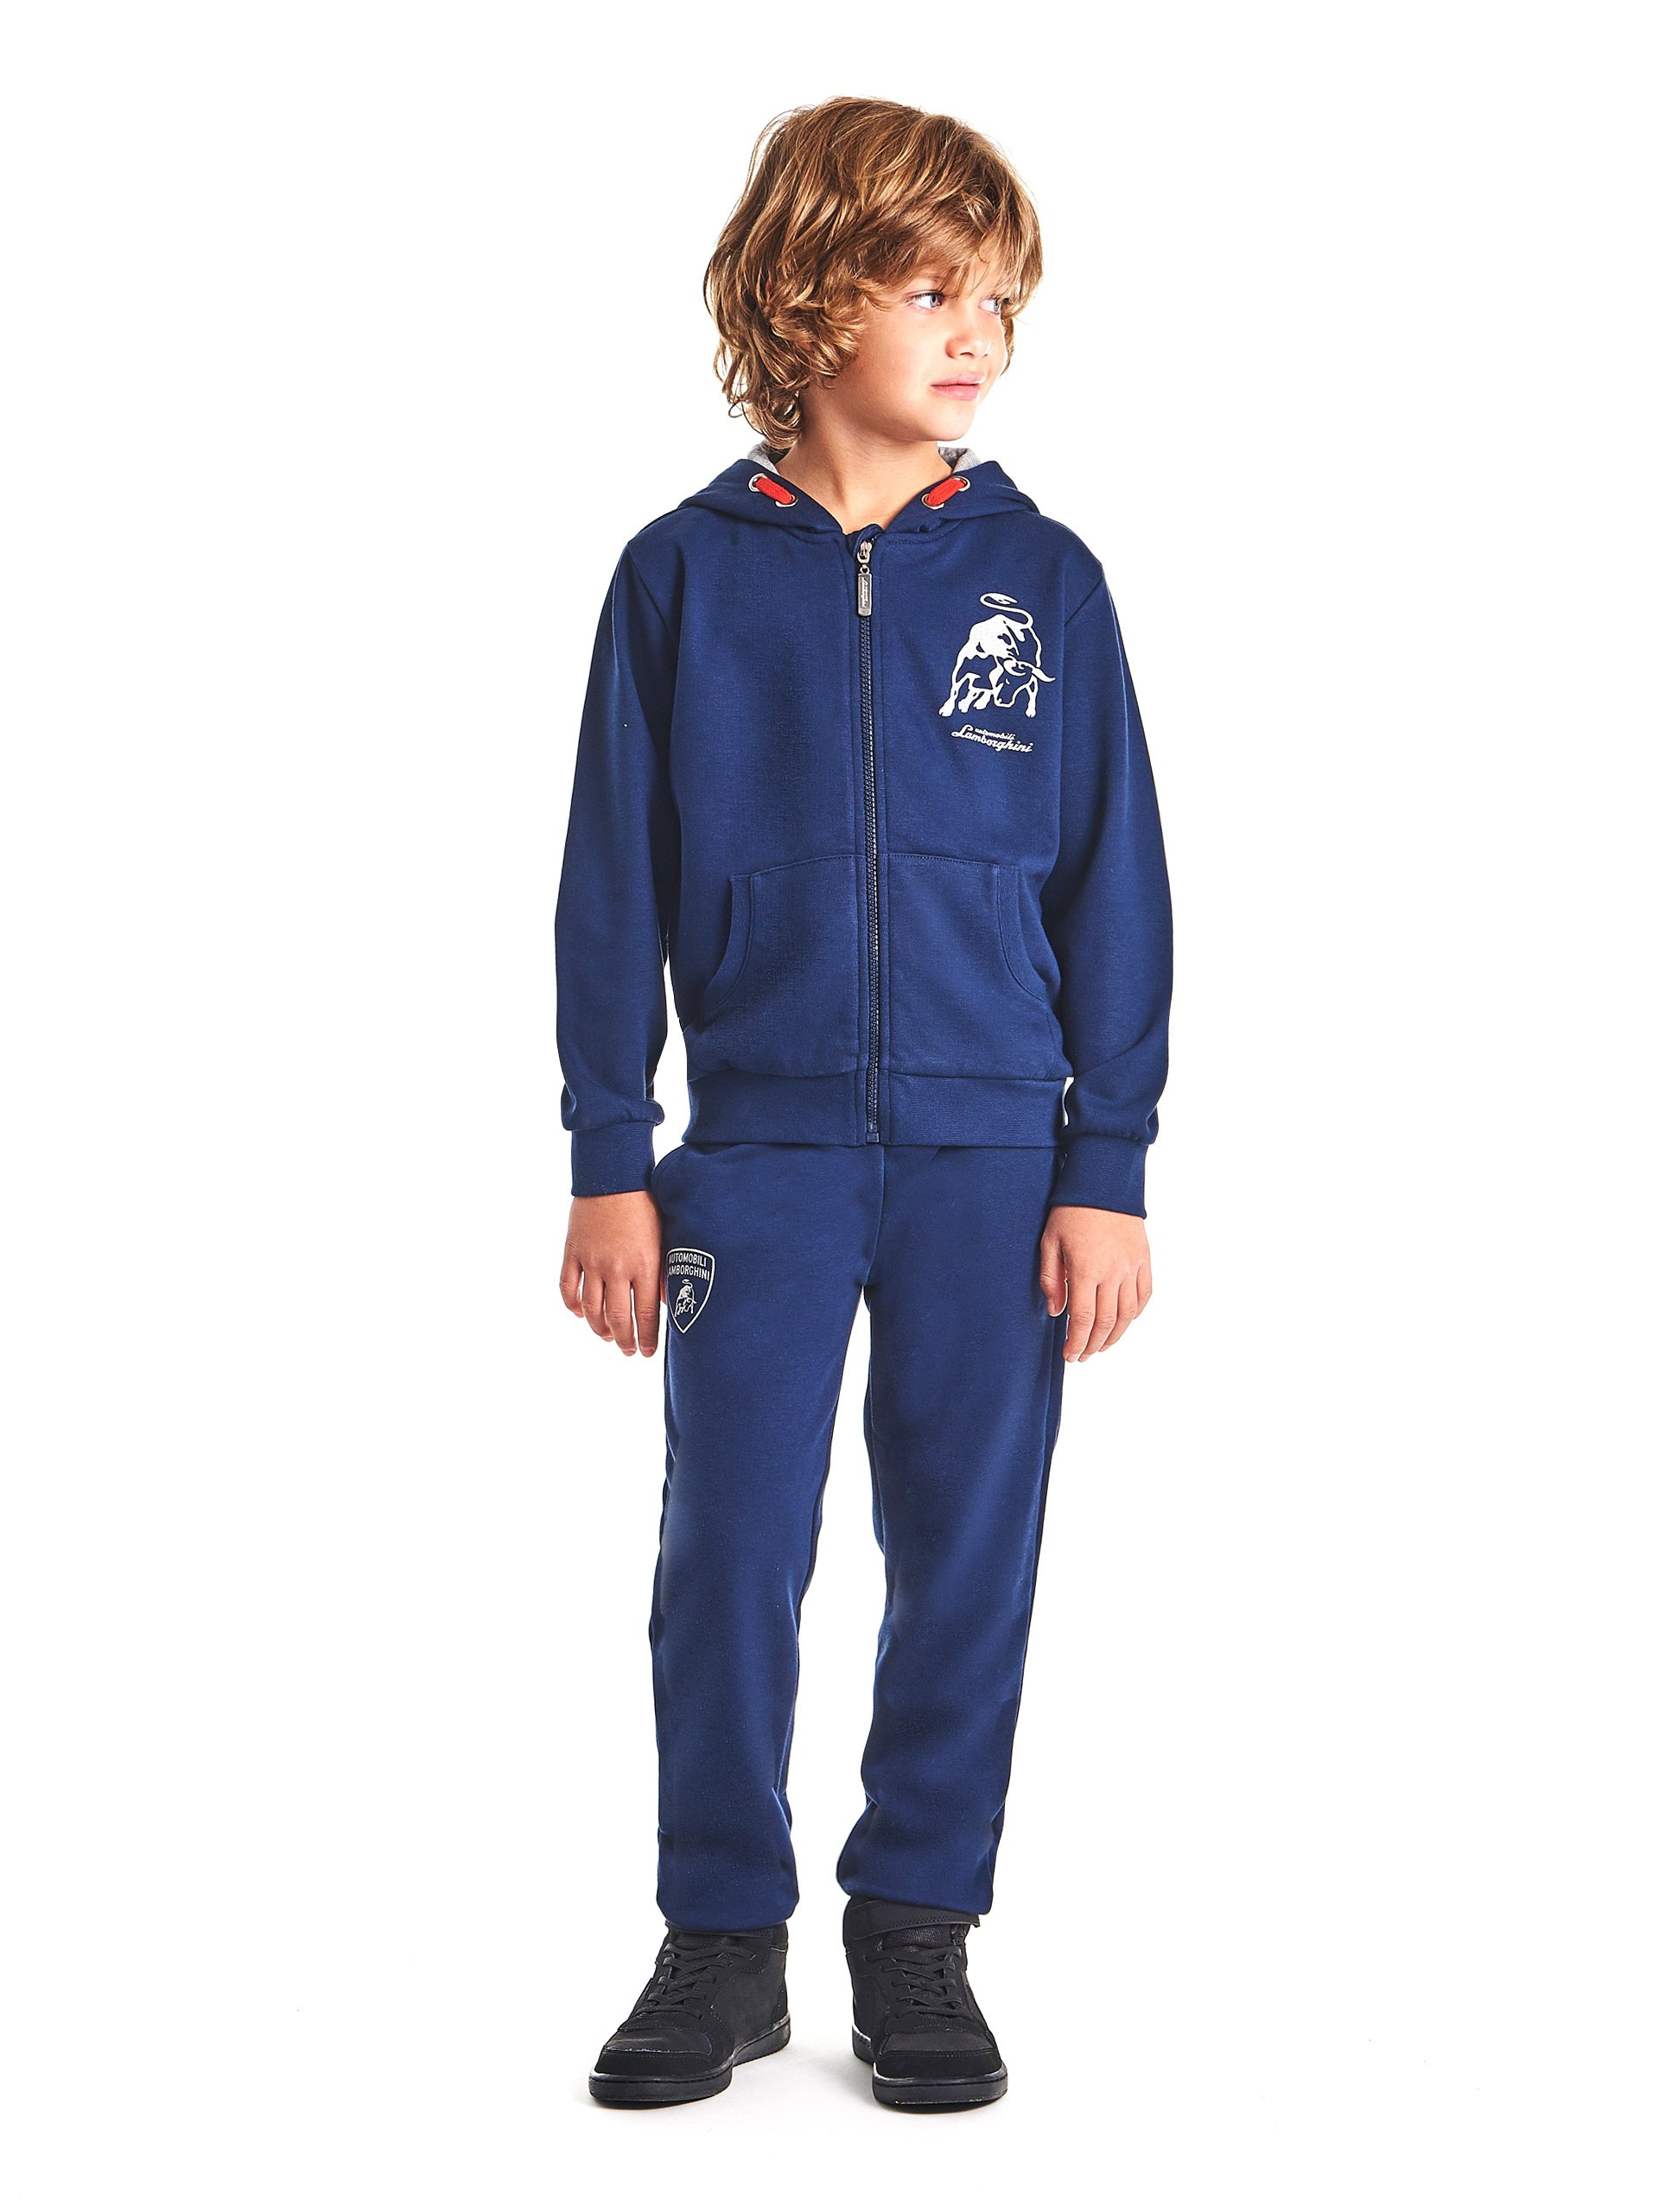 Automobili Lamborghini Children Lamborghini Bull Tracksuit For Kids 12 Years Blue